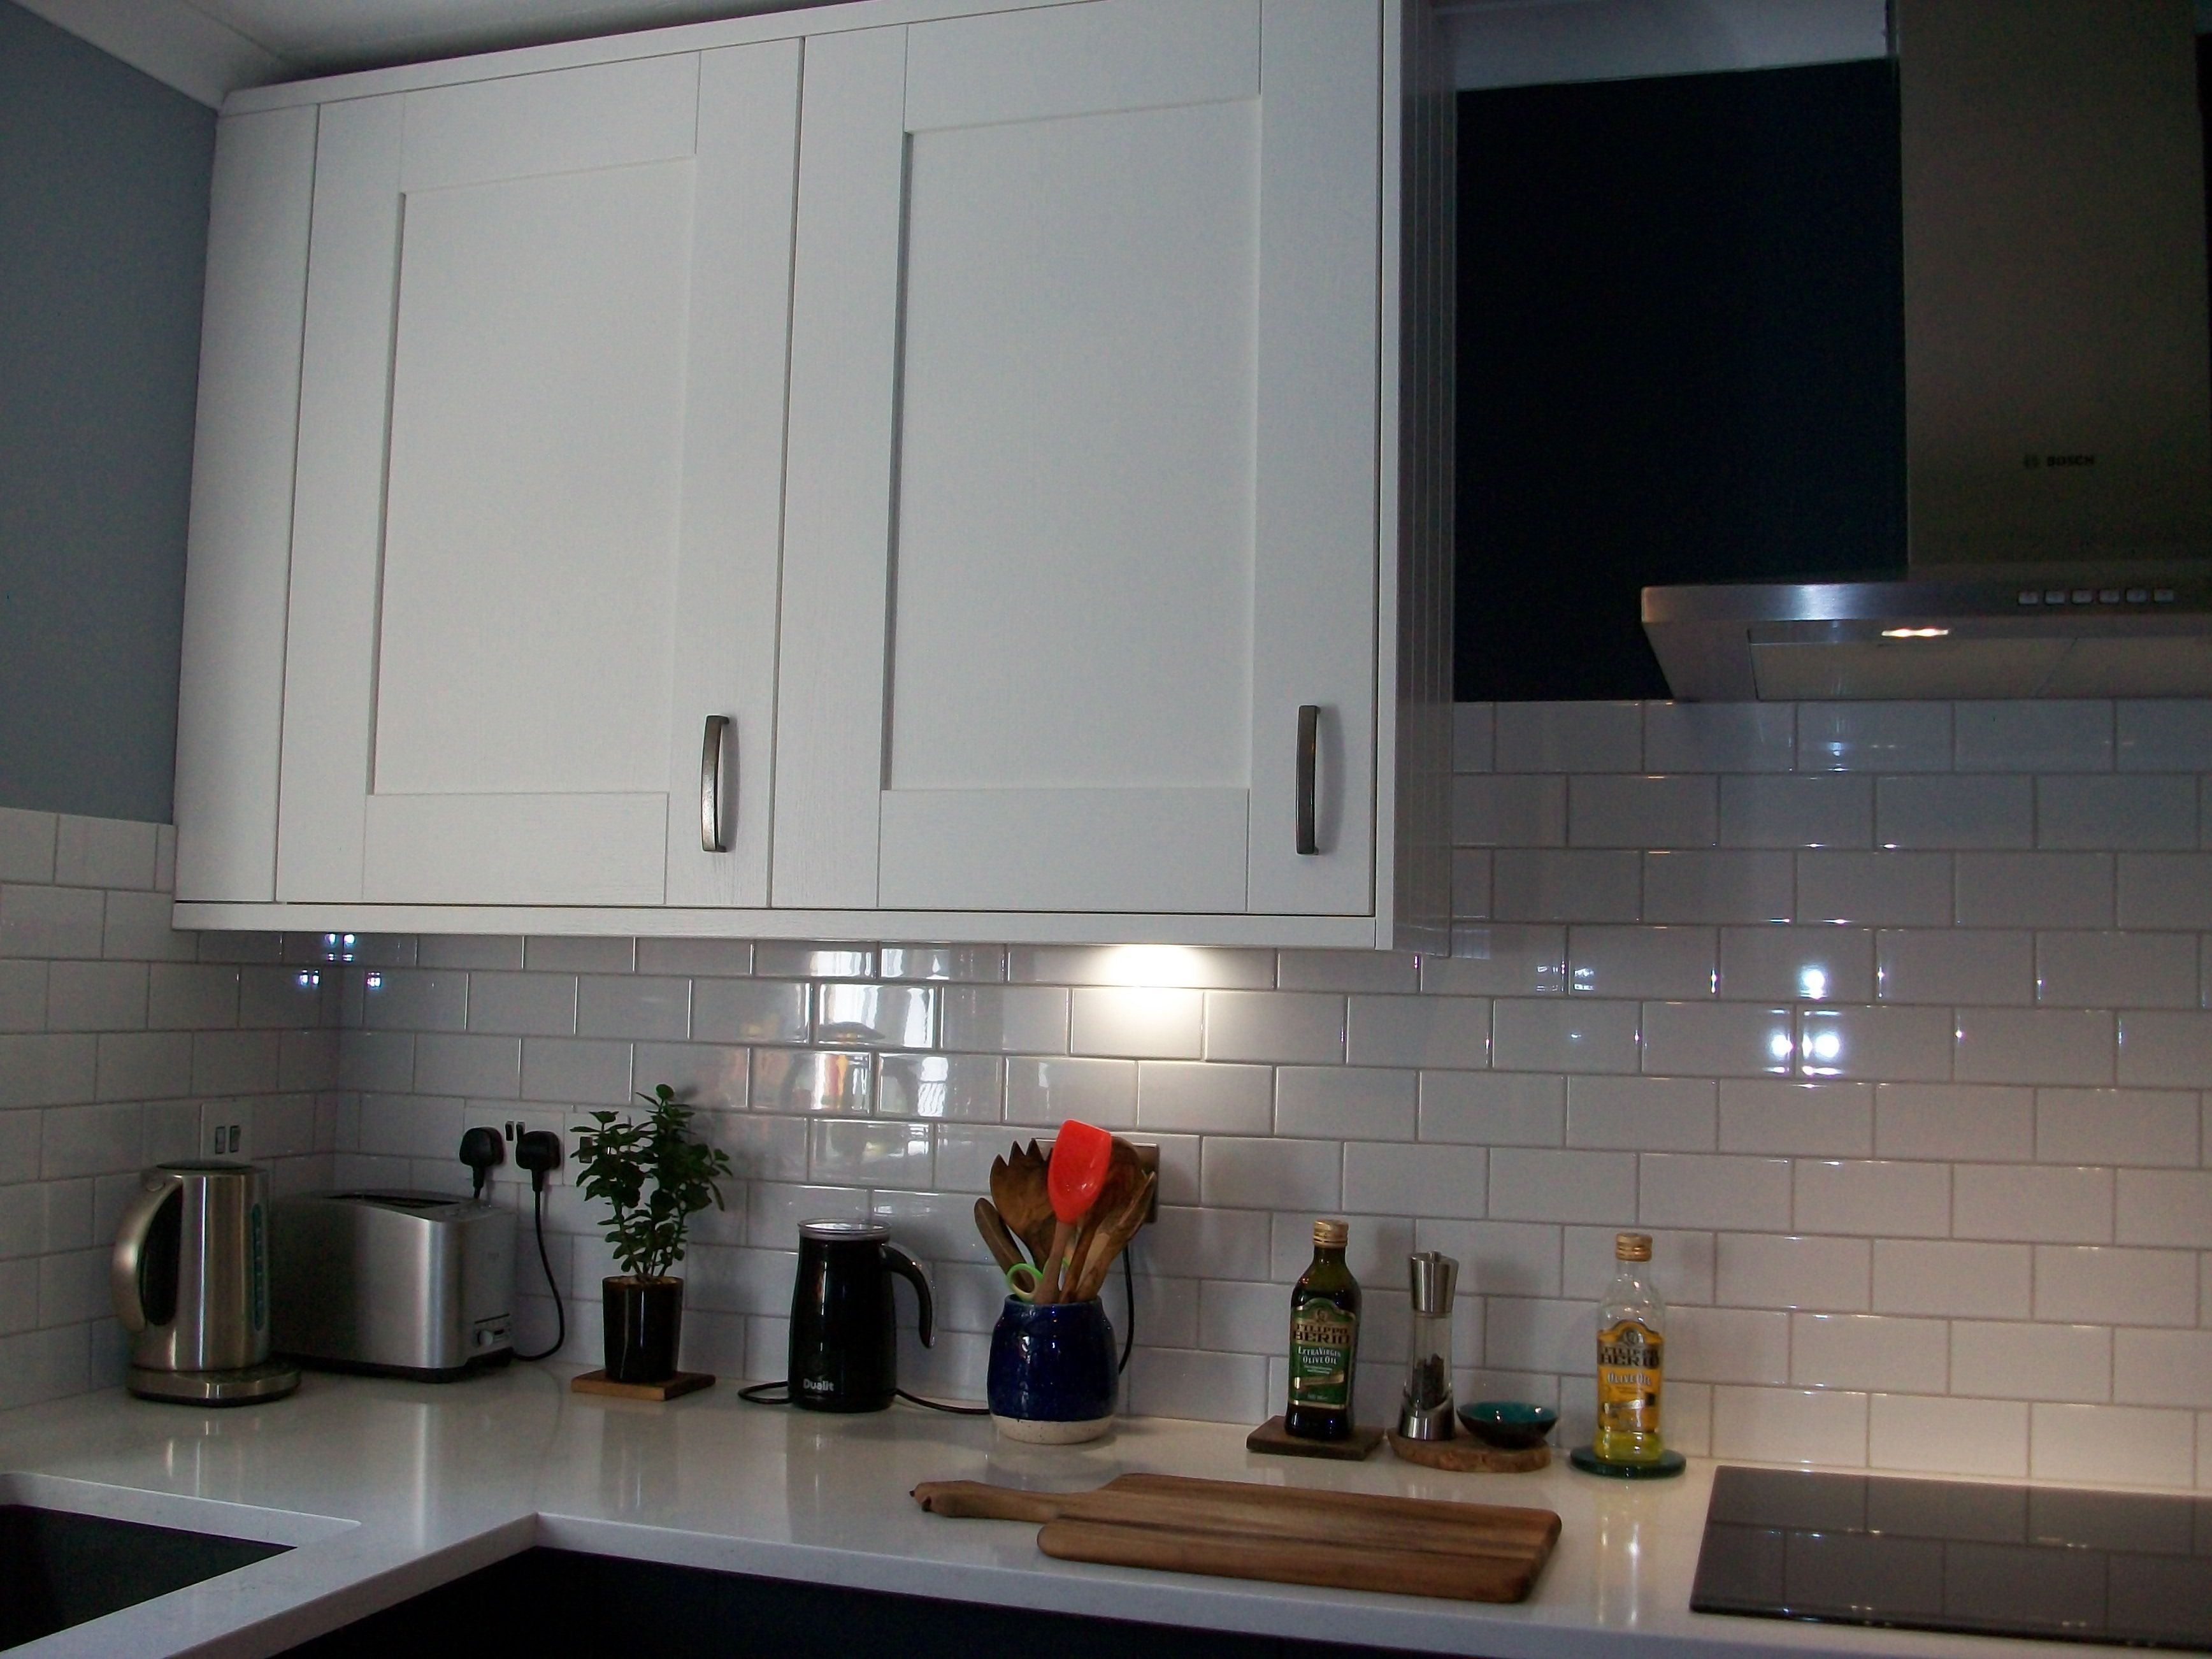 Kitchen Tiles London kitchen makeover white/blue subway tiles white grey grout white